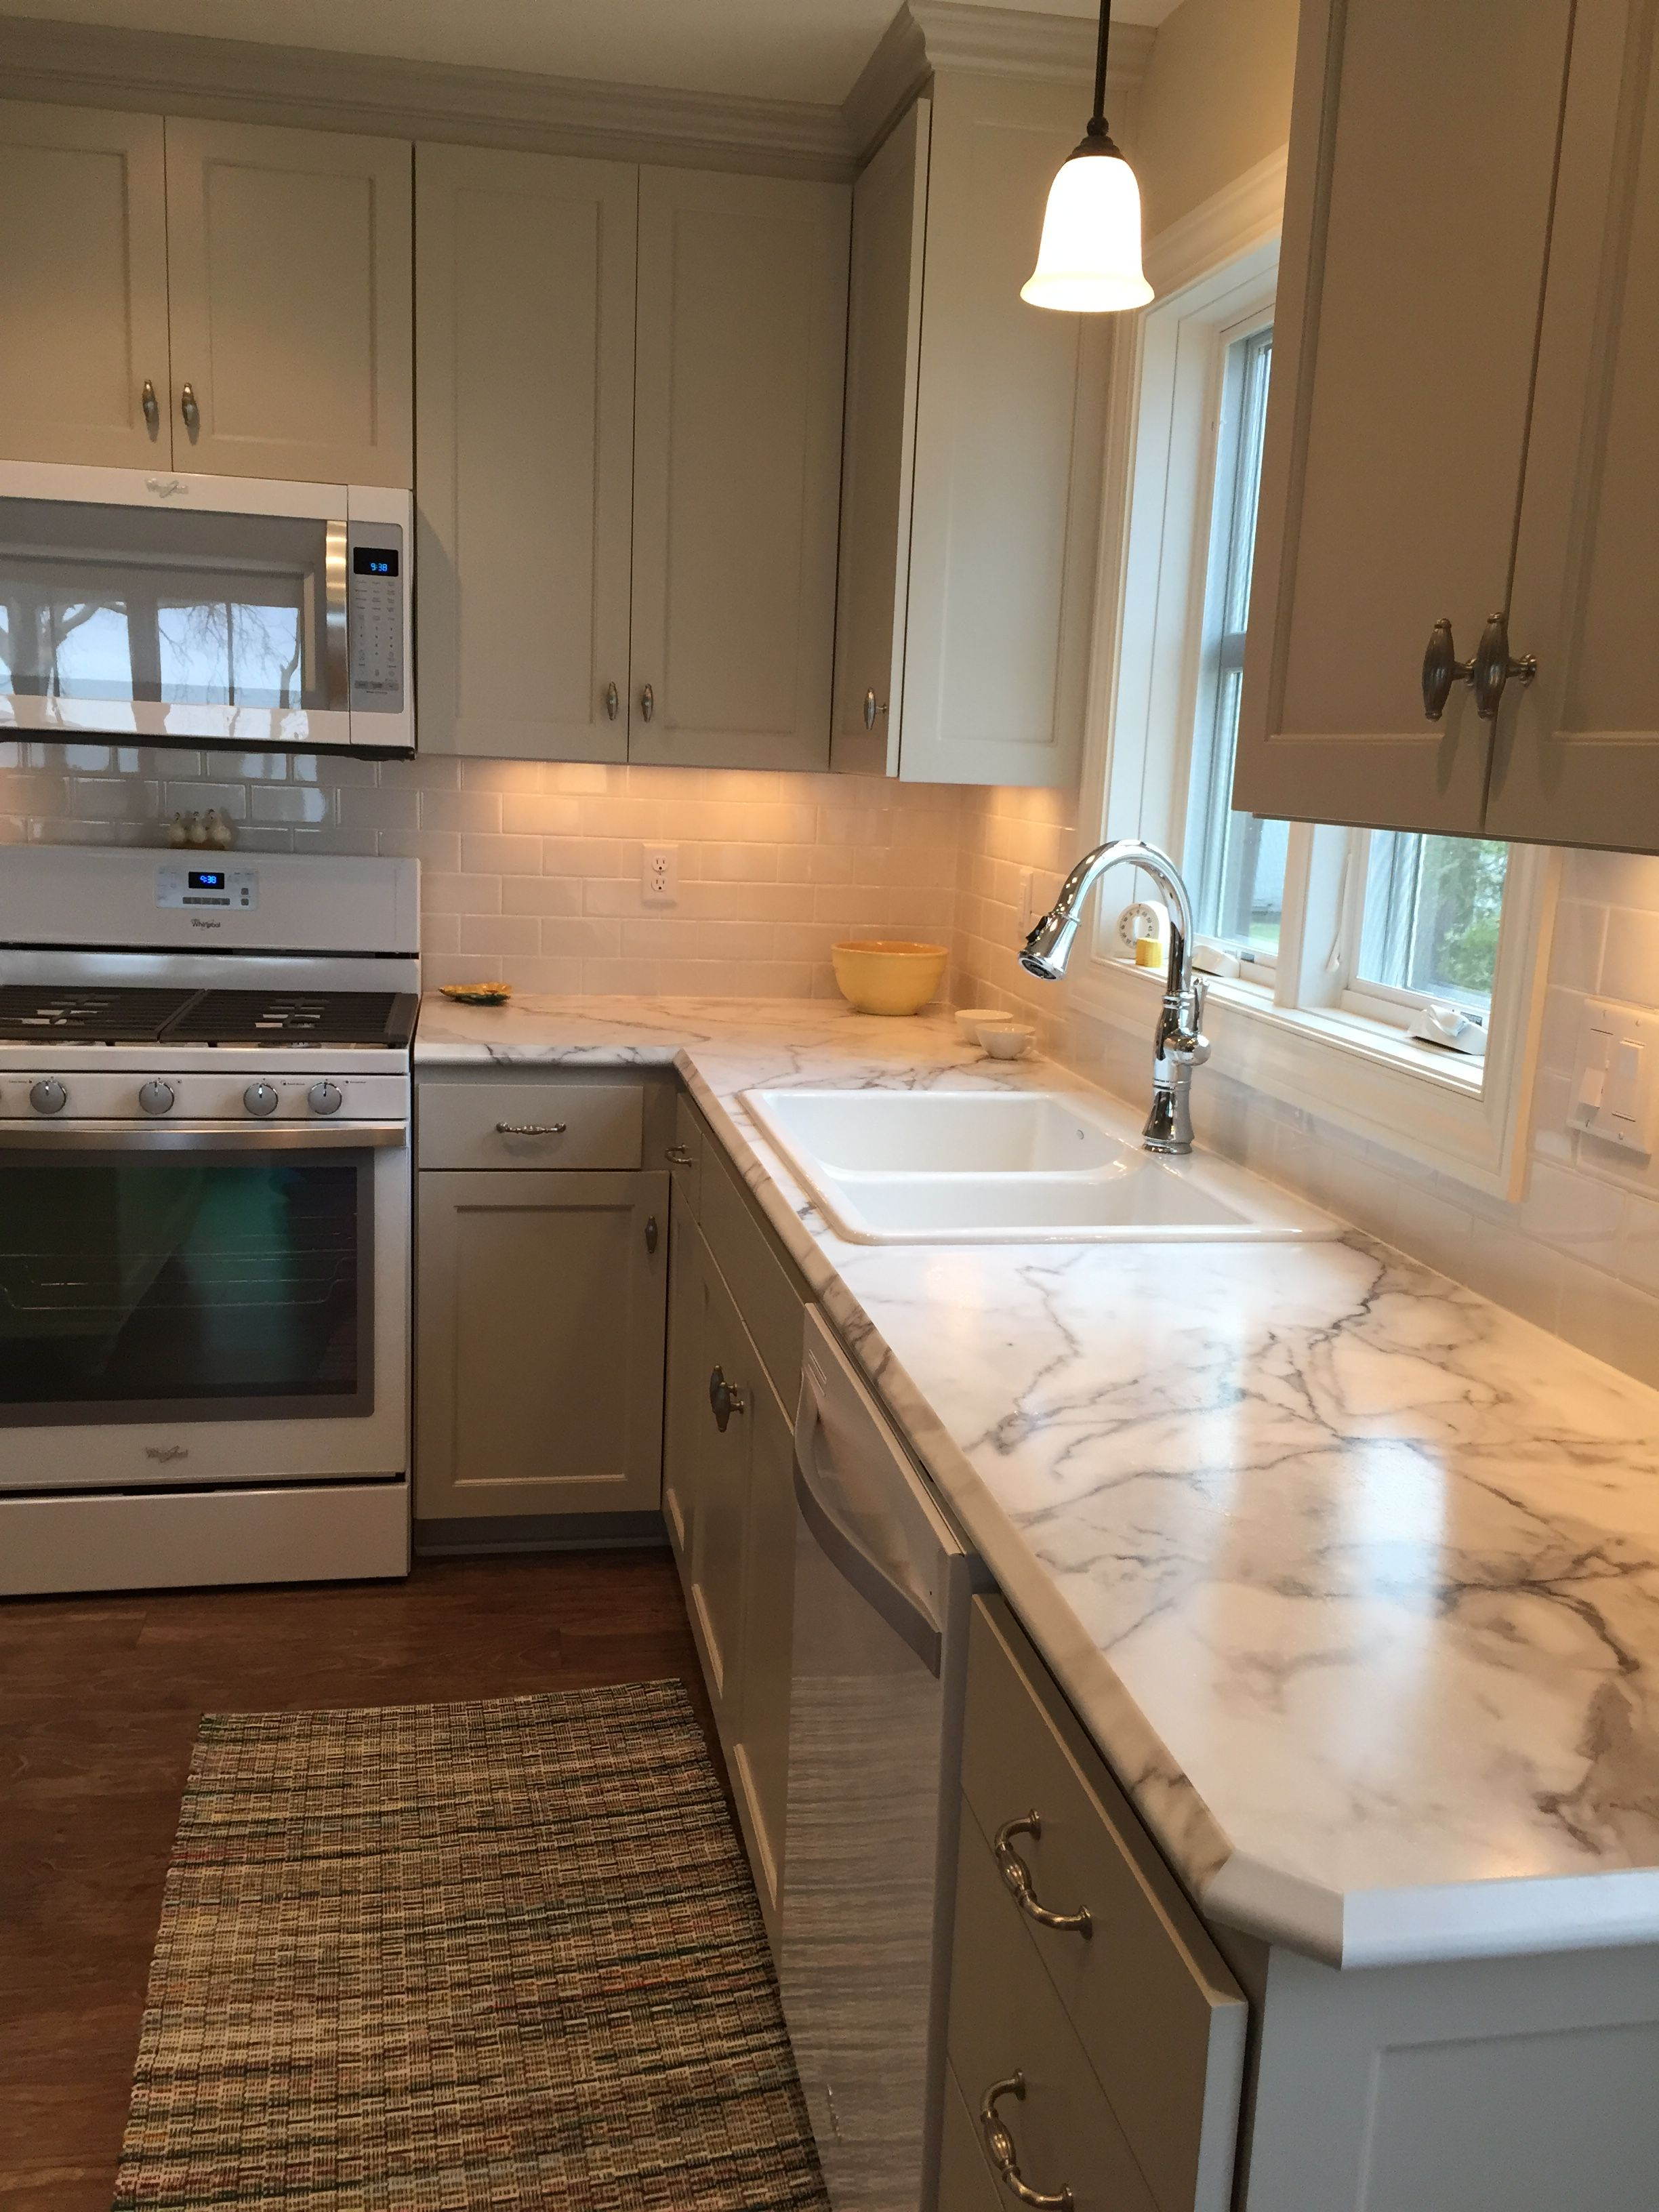 Formica Fx 180 Calcutta Marble With Ideal Edge Our New Blue Cottage Pinterest Calcutta